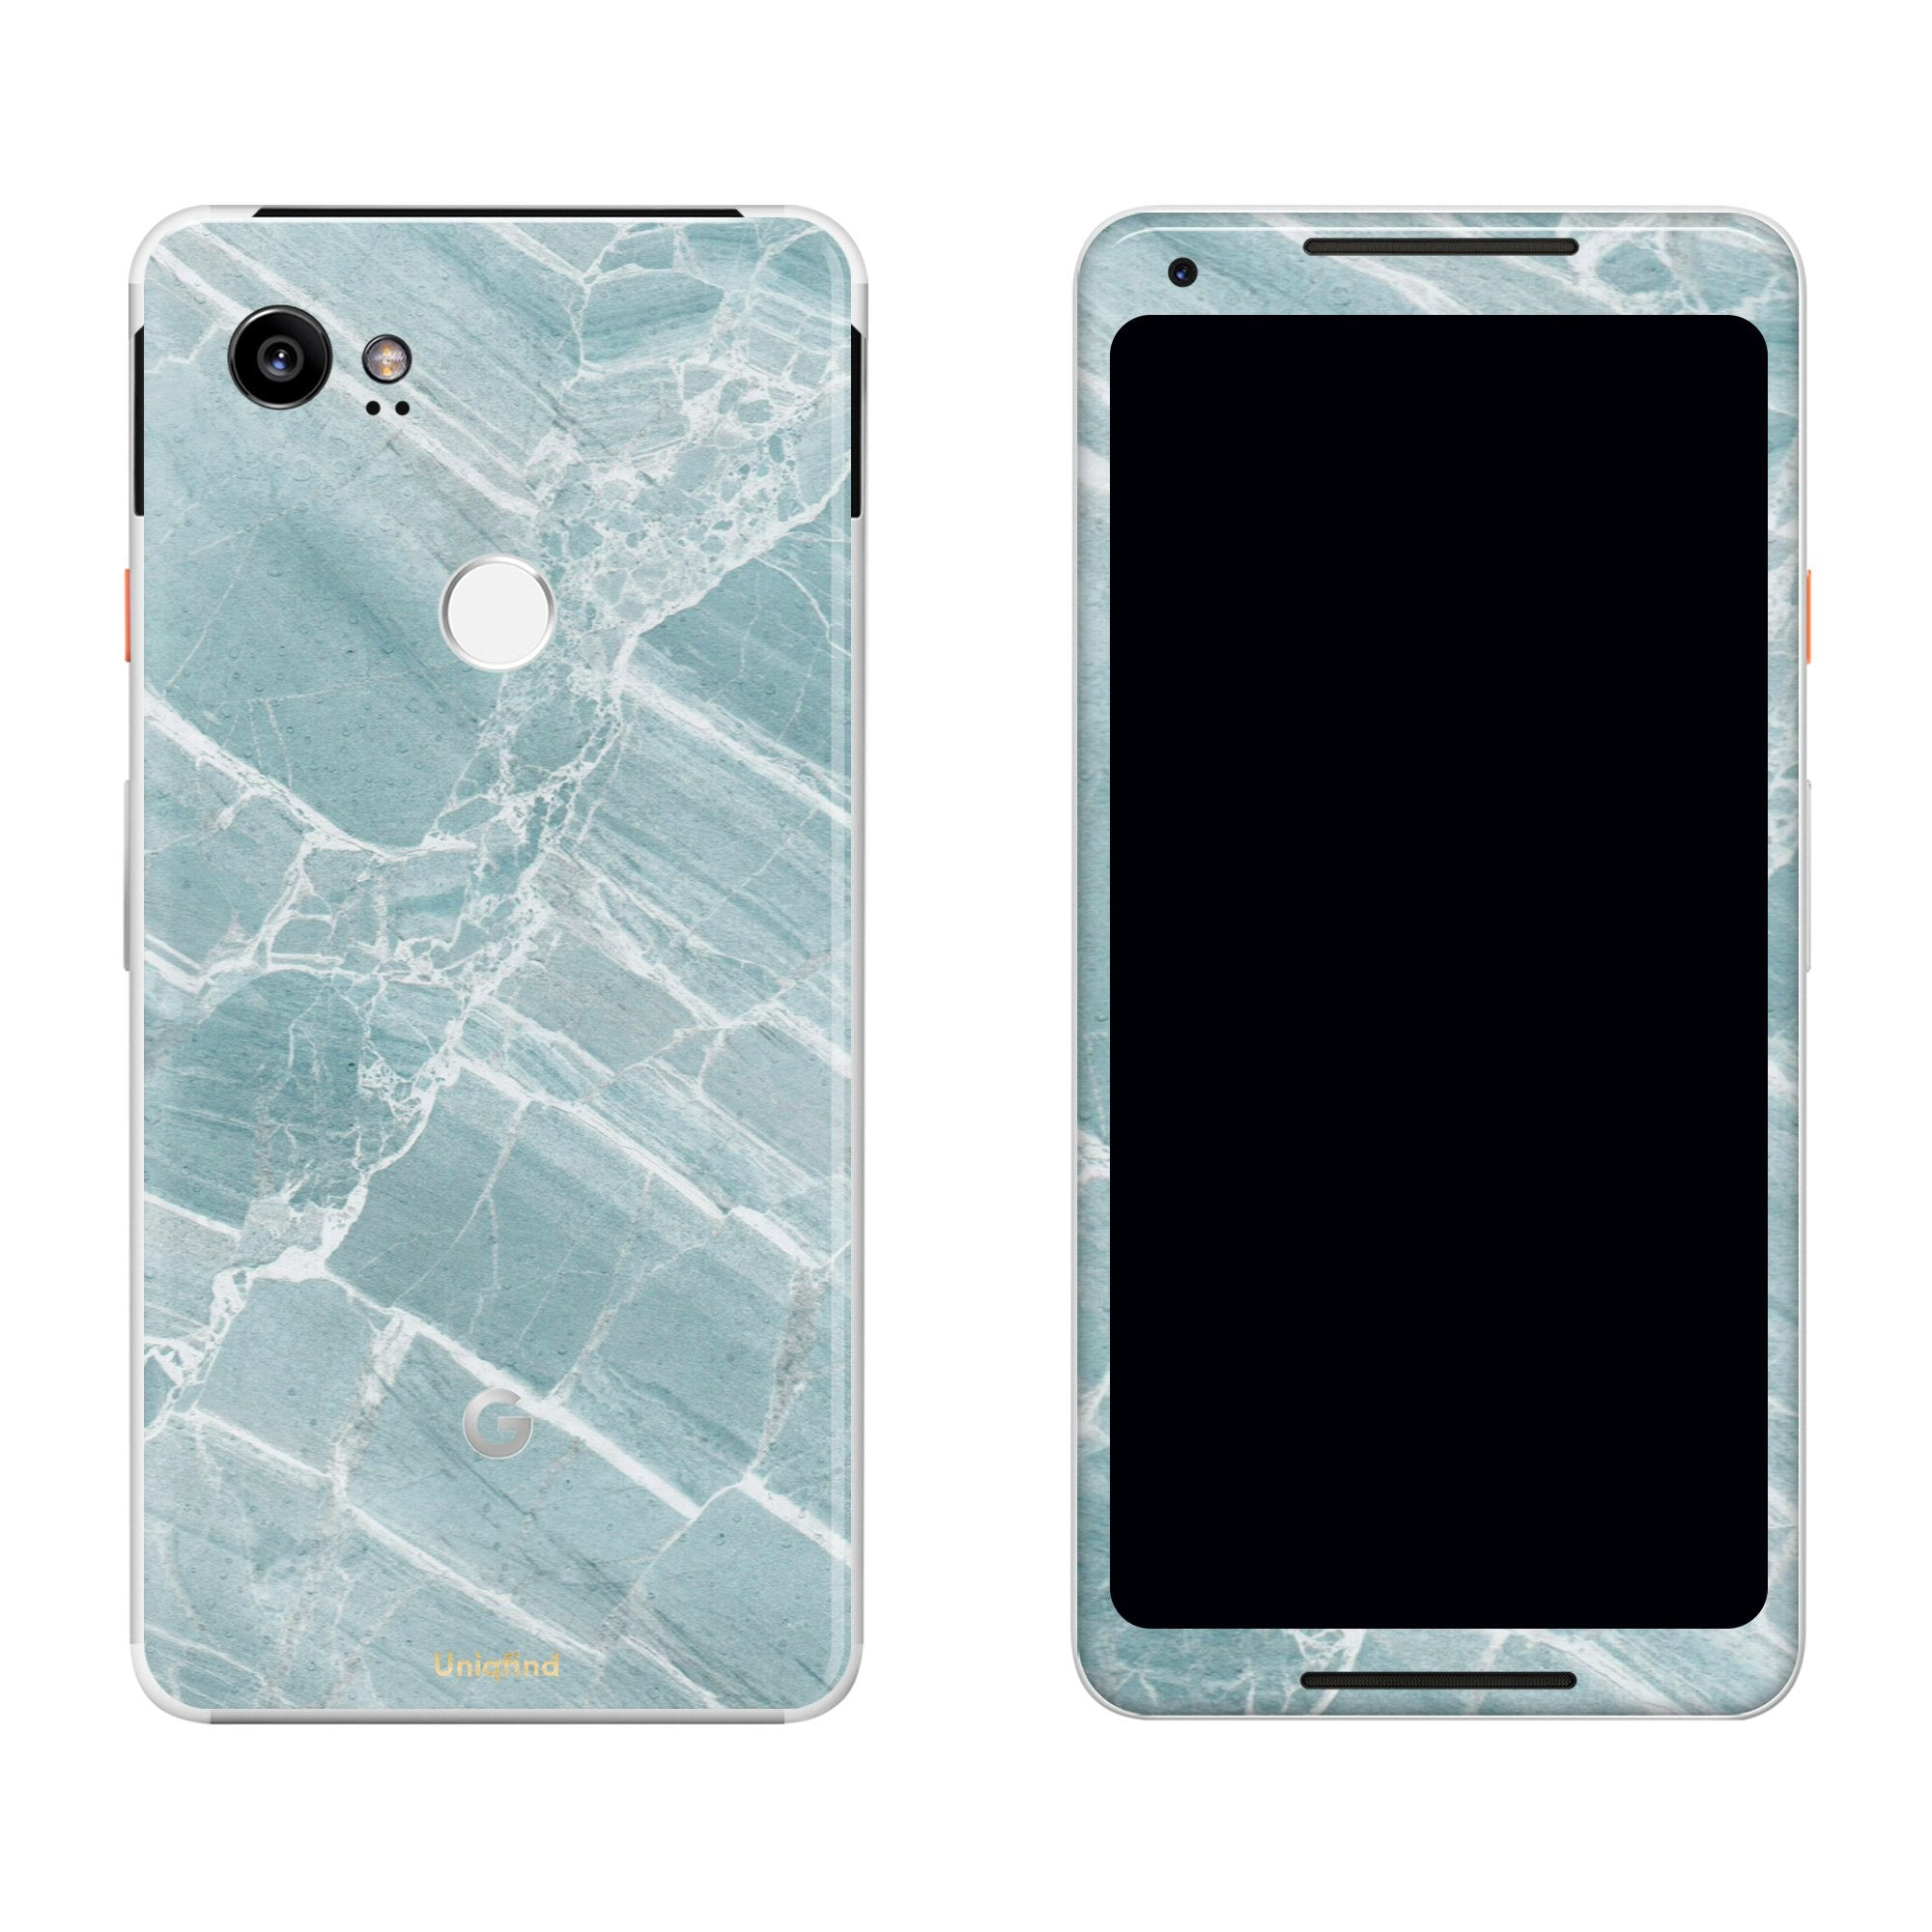 Mint Marble Pixel 2 XL Skin + Case